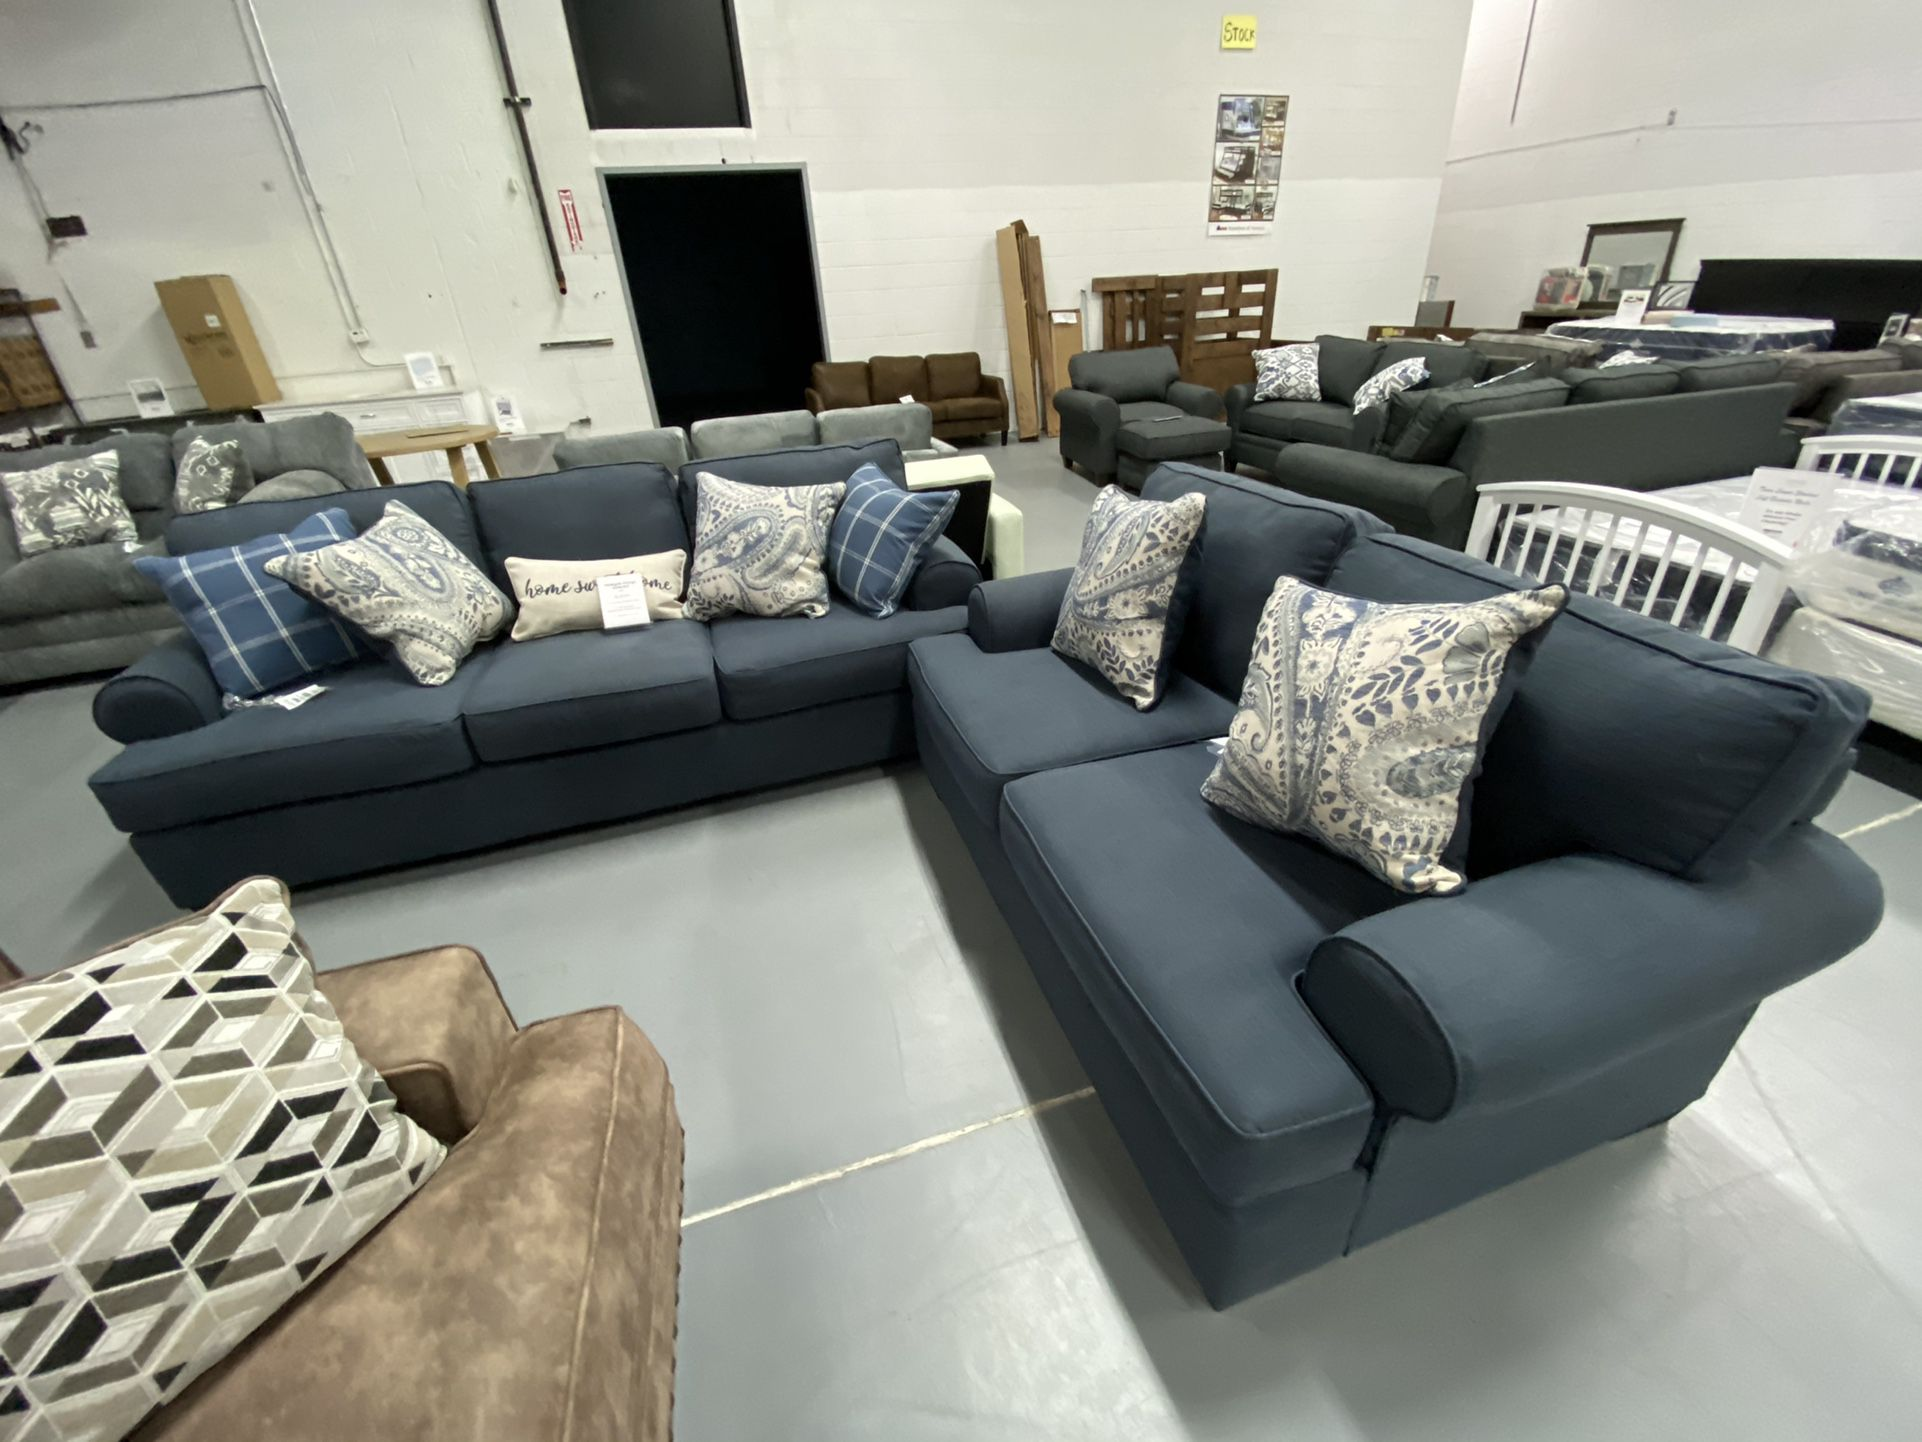 Best Deals On New Sofas And Sectionals - 90 Days Same As Cash - $52 Down Ask Eli Today